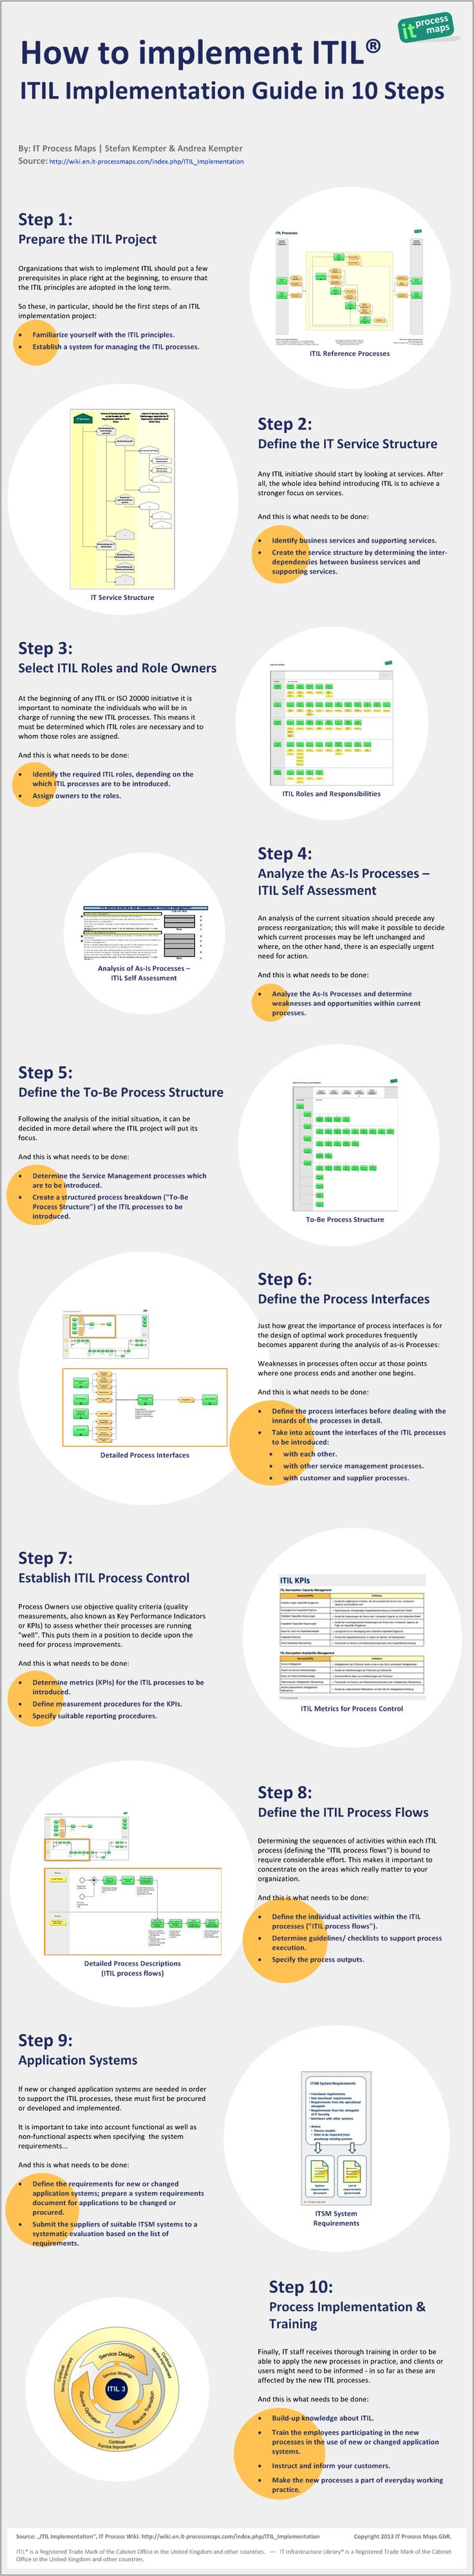 Infographic: ITIL Implementation Guide in 10 Steps. -- IT Process Wiki: How to implement ITIL.